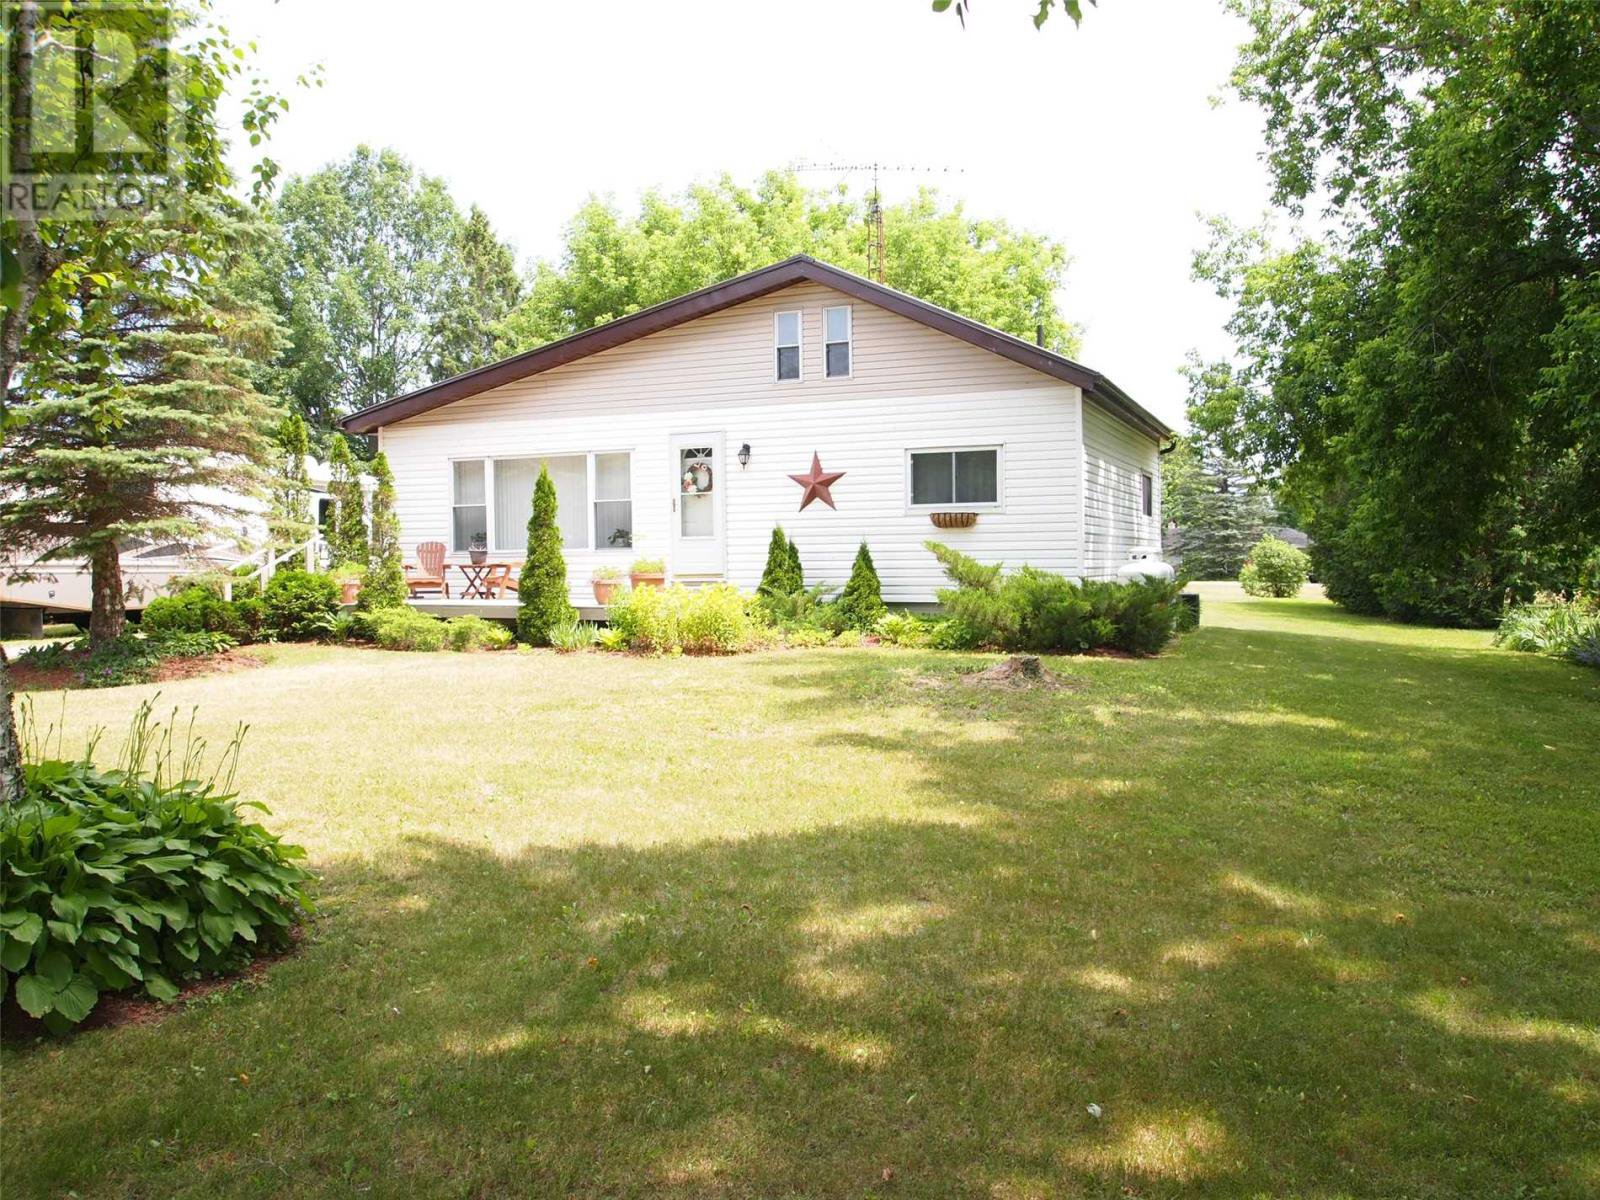 Main Photo: 46 Mitchellview Dr in : Kirkfield Freehold for sale (Kawartha Lakes)  : MLS®# X4512797